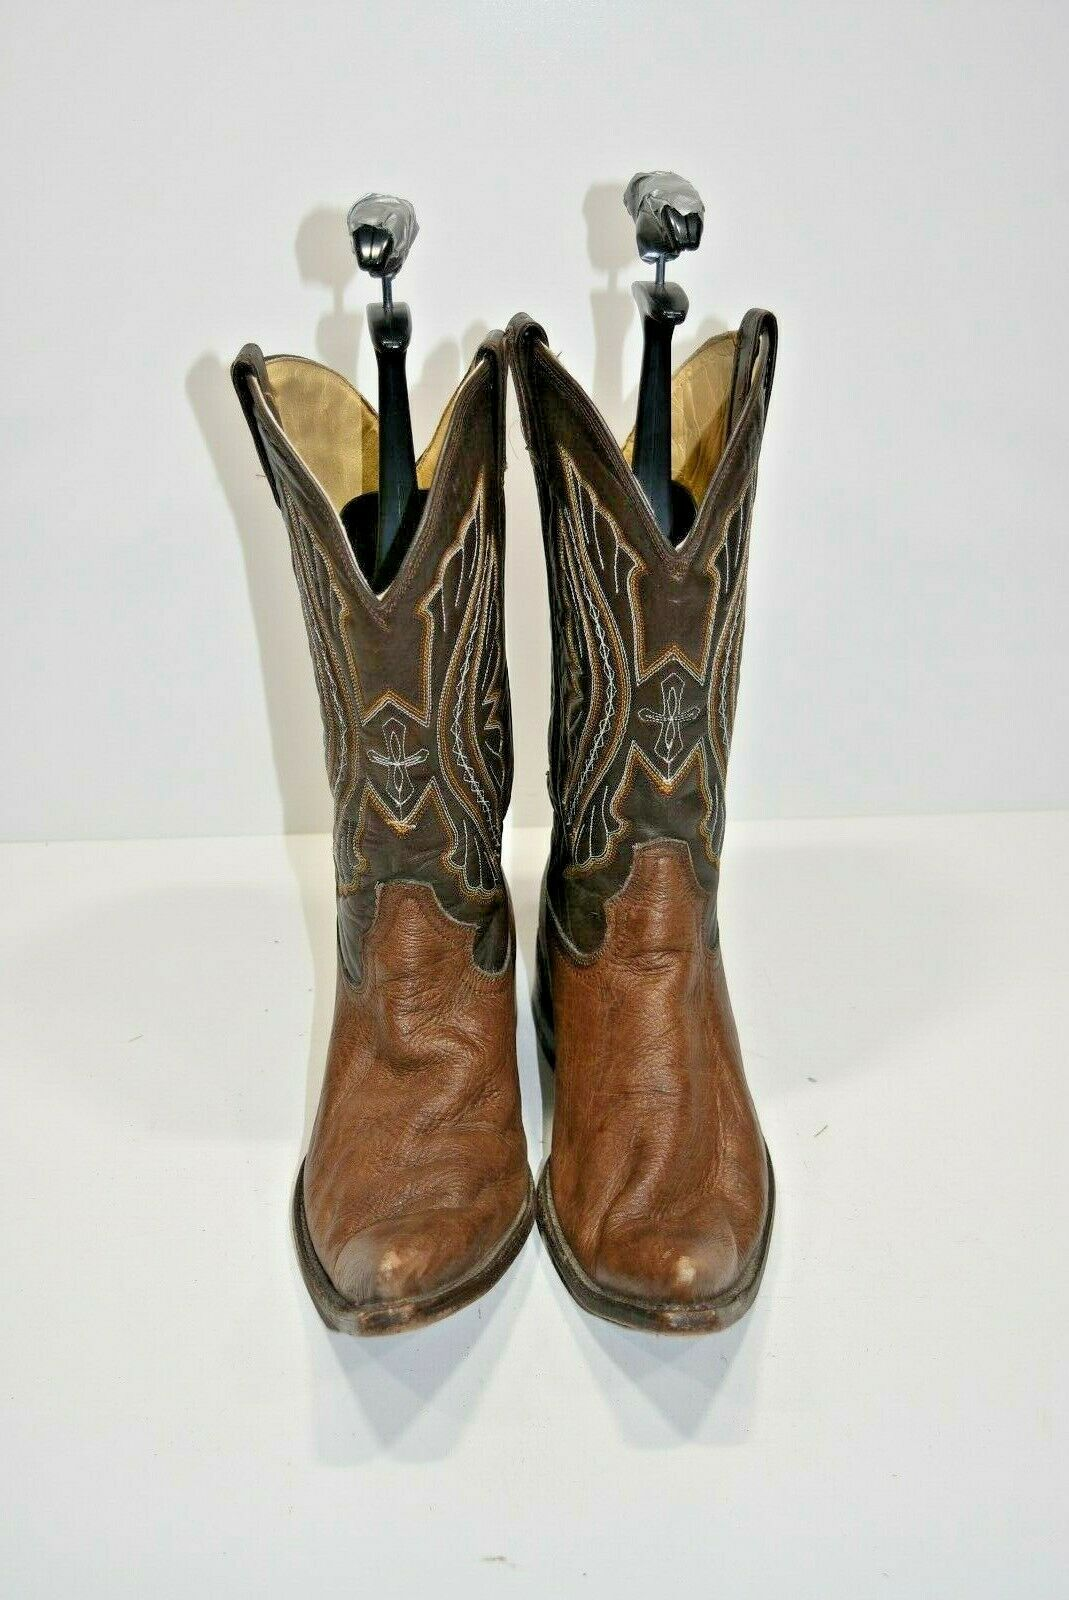 RUDEL MENS 10.5 EE BROWN LEATHER POINTED TOE MEXICAN WESTERN COWBOY BOOTS